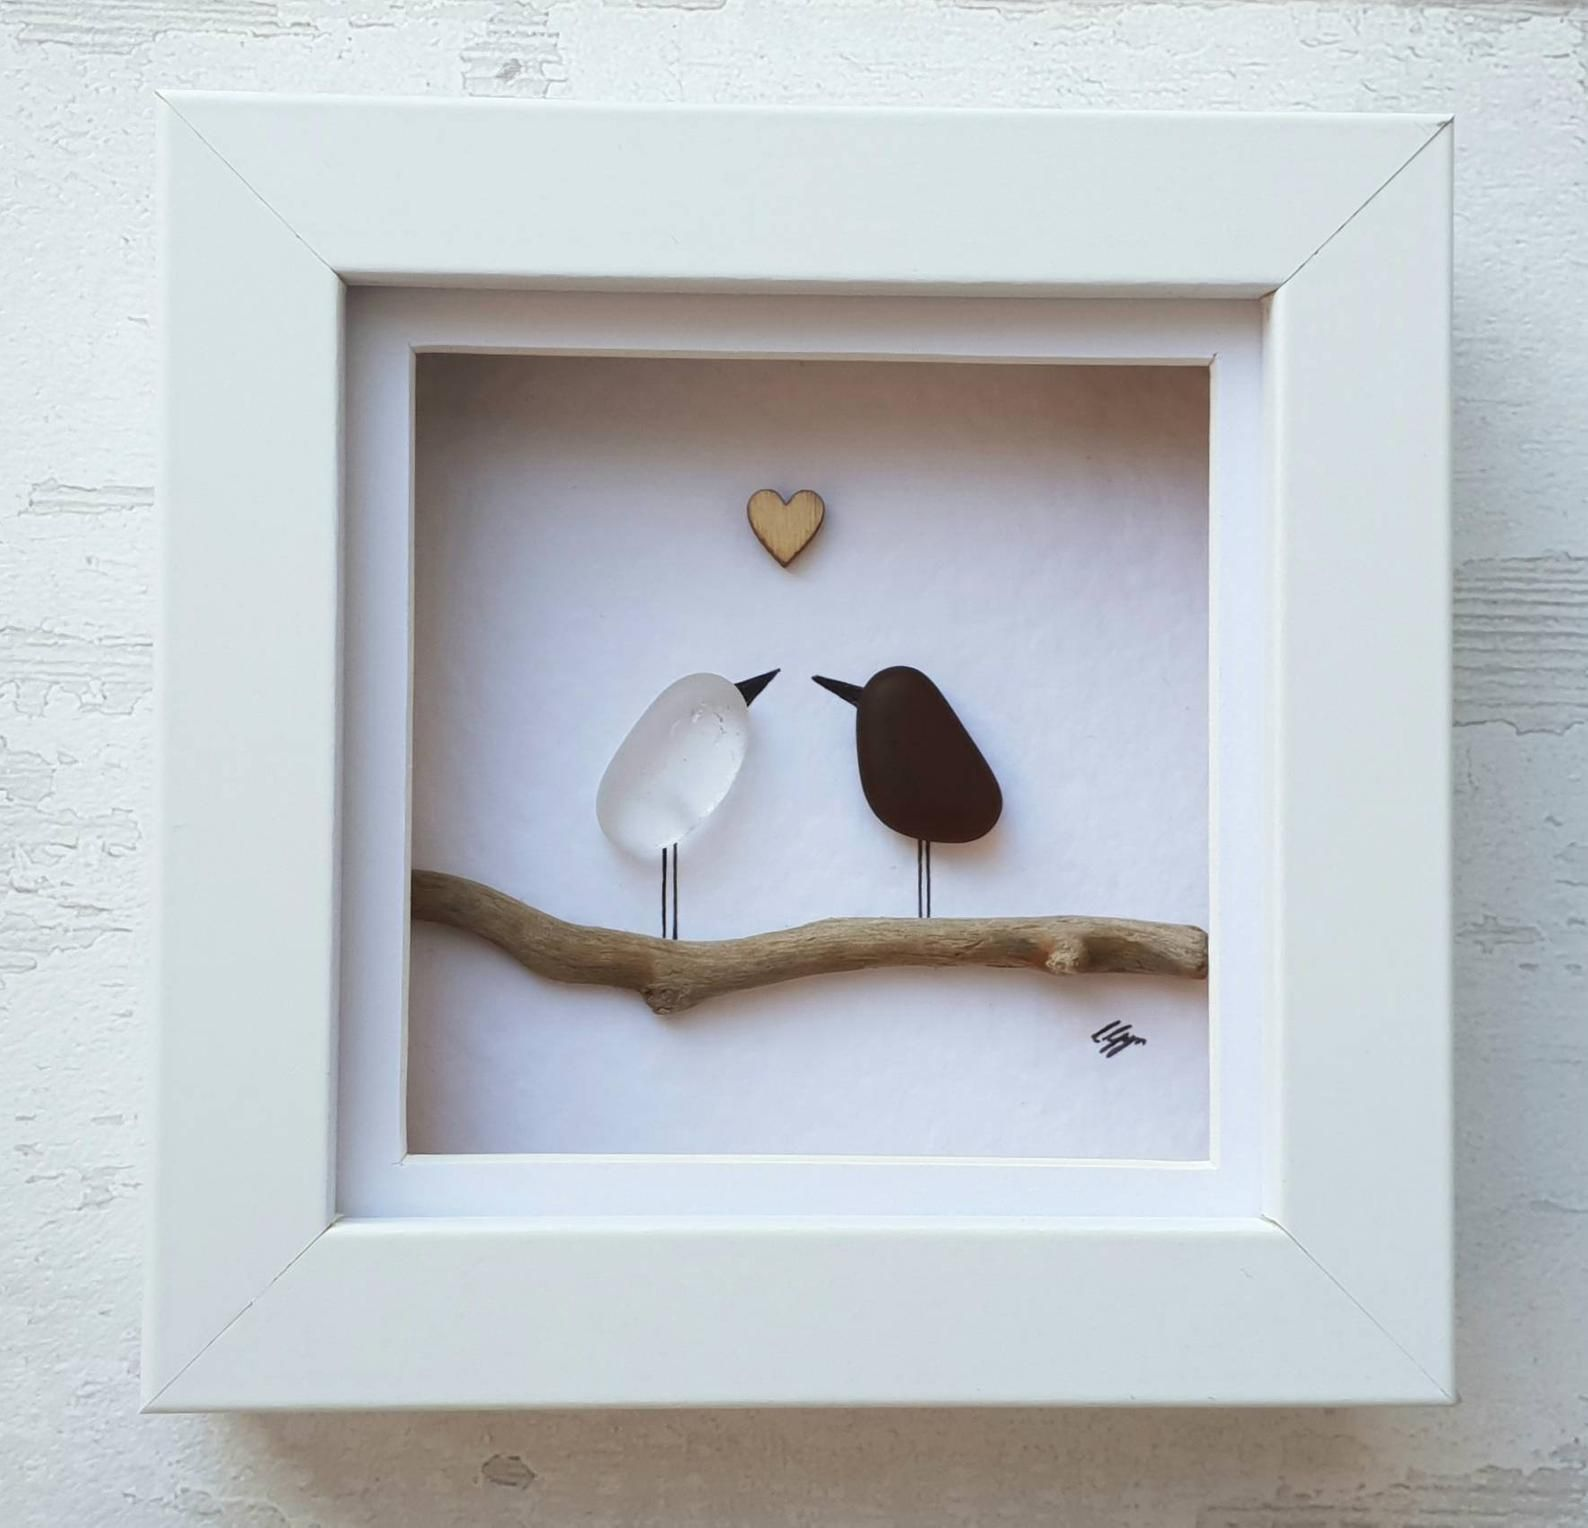 Sea glass love birds art unique newlywed gift perfect